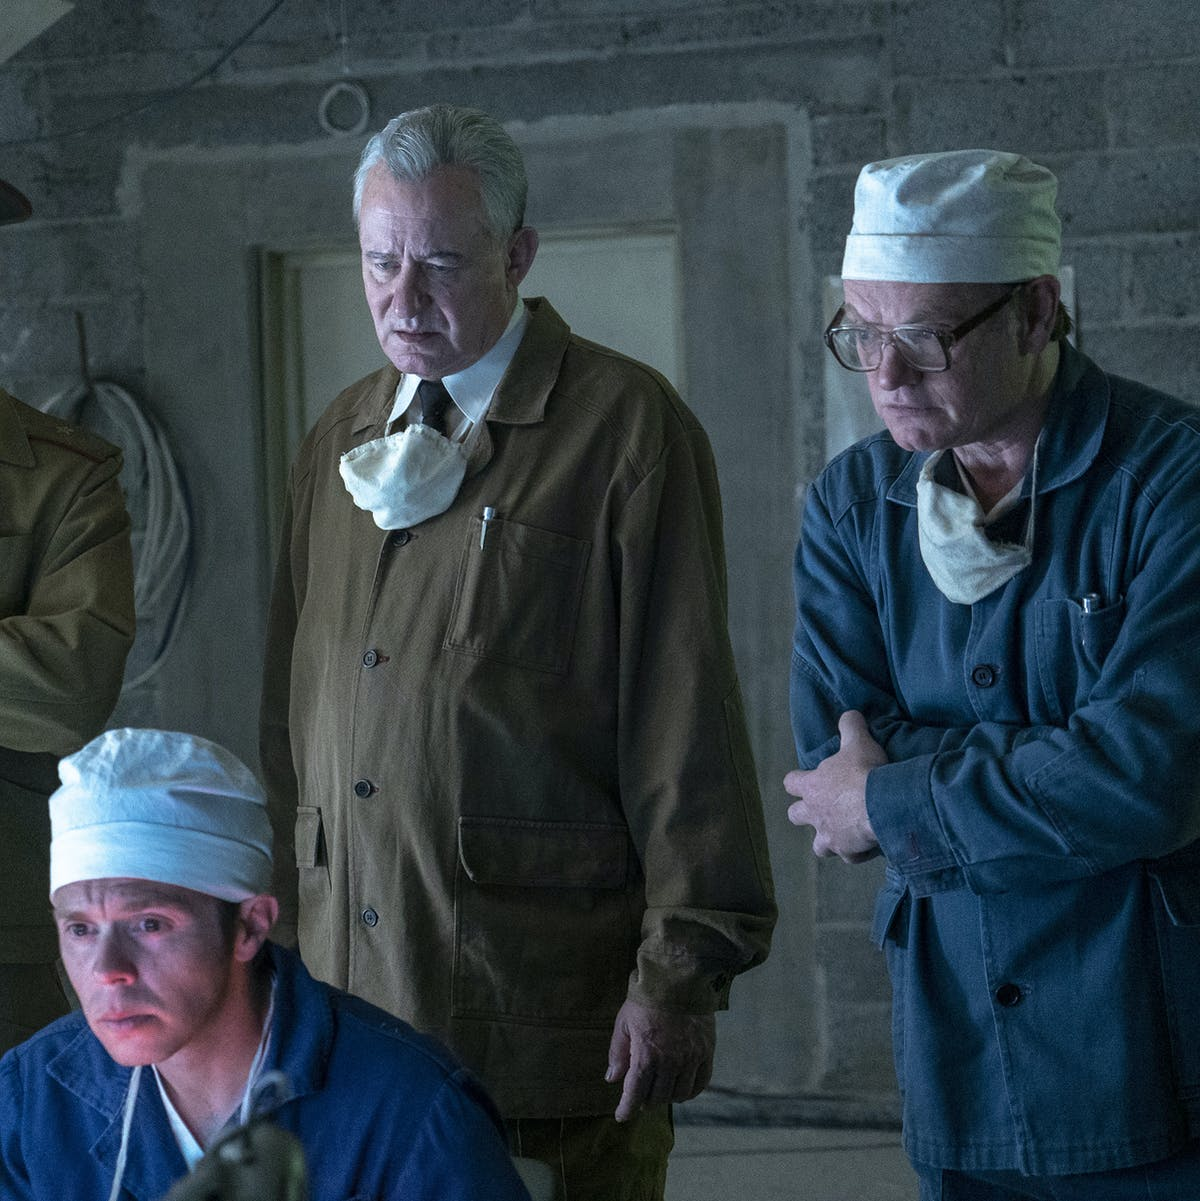 HBO's 'Chernobyl' Is Already the Highest Rated Show of All Time on IMDb